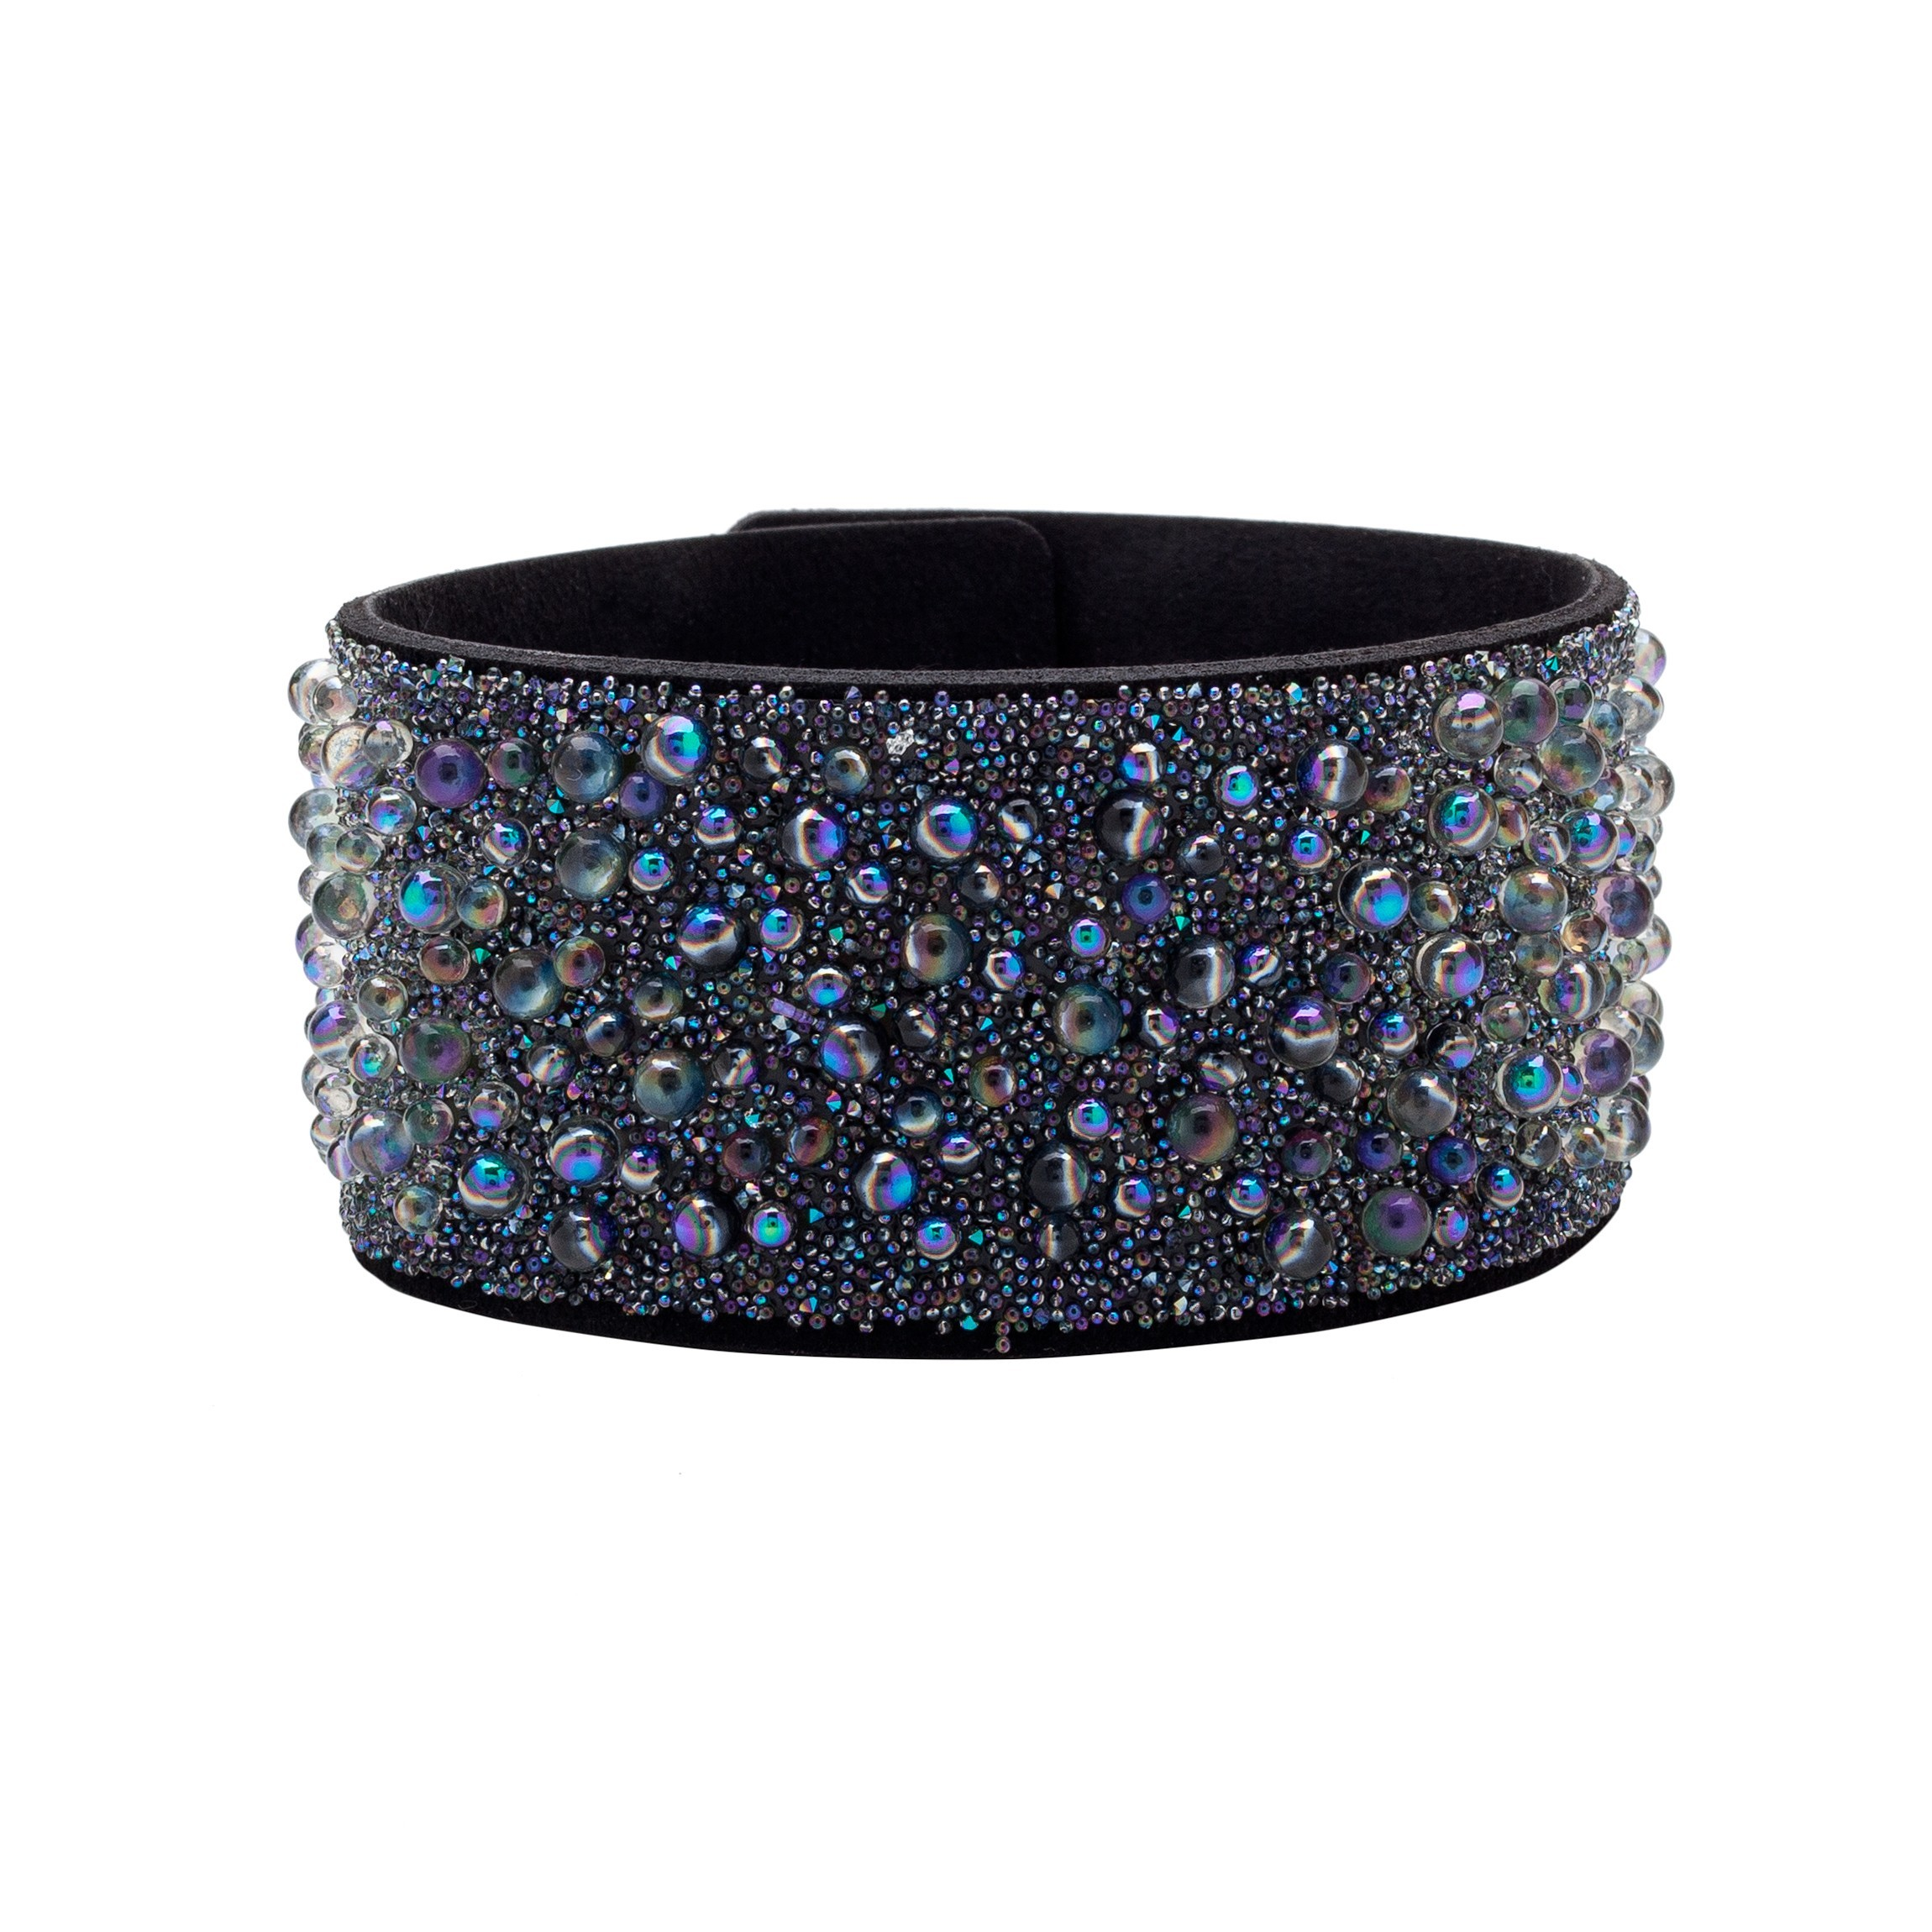 BRACELET WITH ALCANTARA AND SWAROVSKI CRY GALUCHAT STONES – MODEL 9